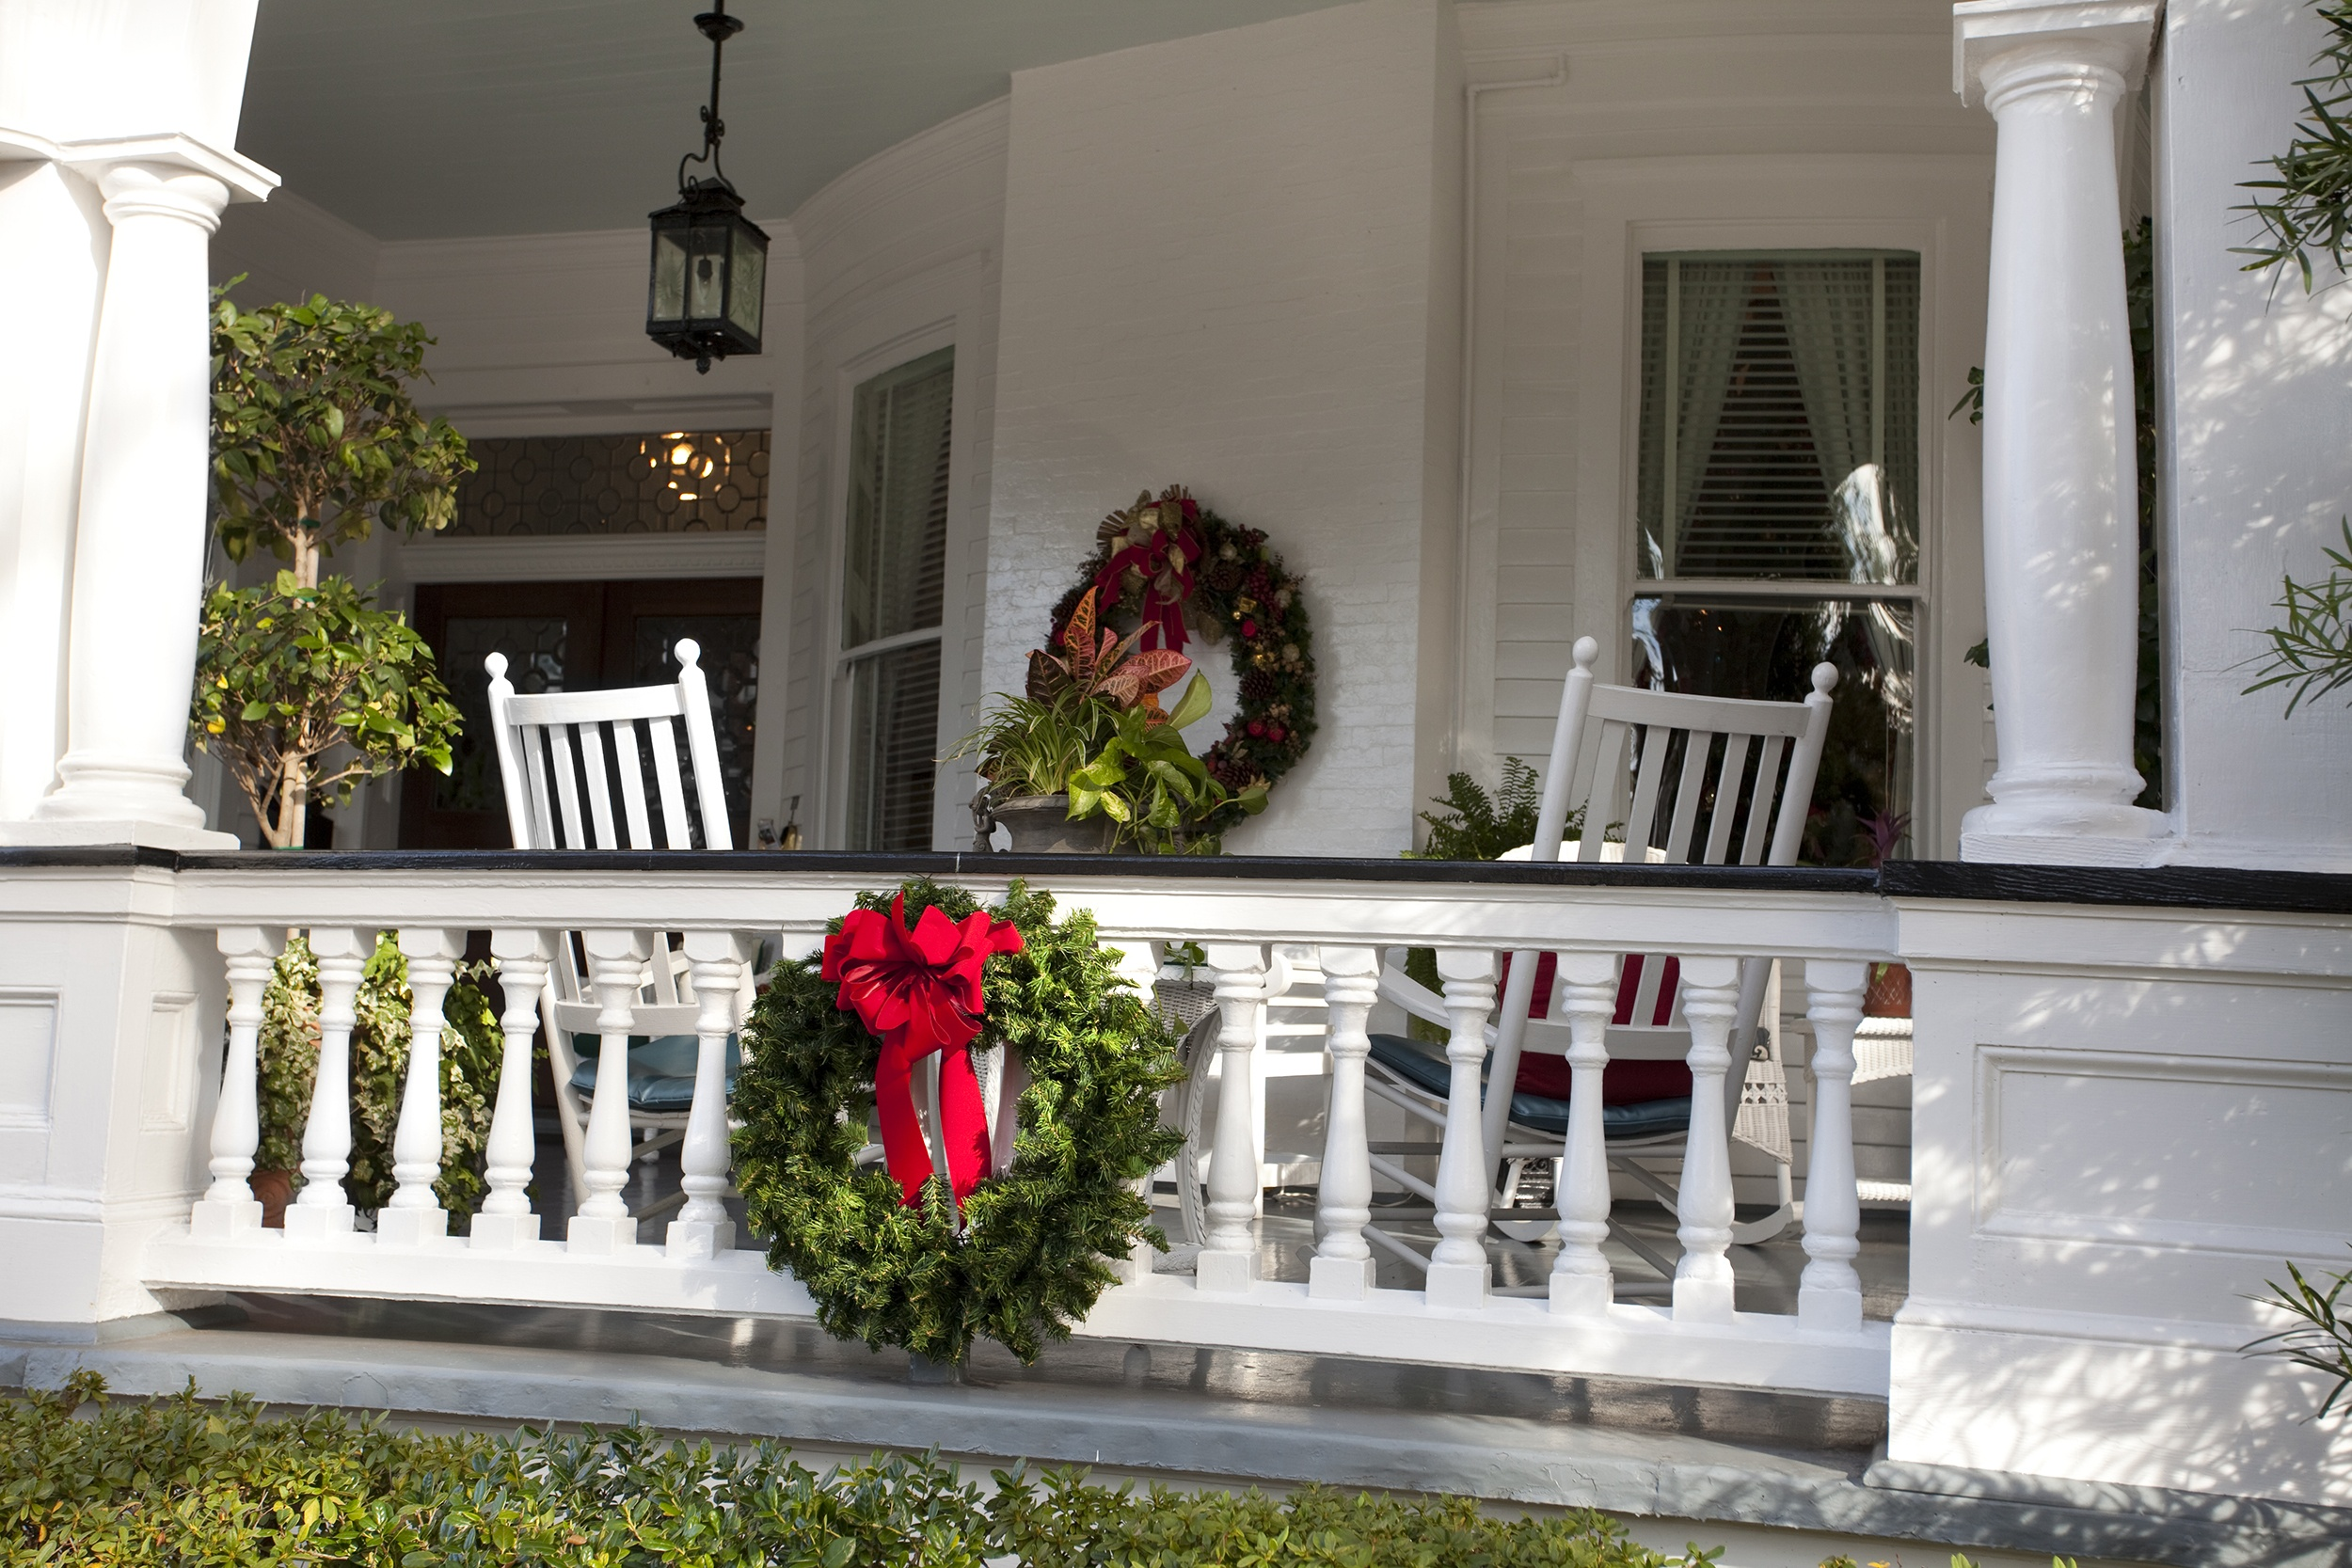 Create a festive Christmas porch with wreaths hanging along railings and down the staircase. & Christmas Porch Decorations